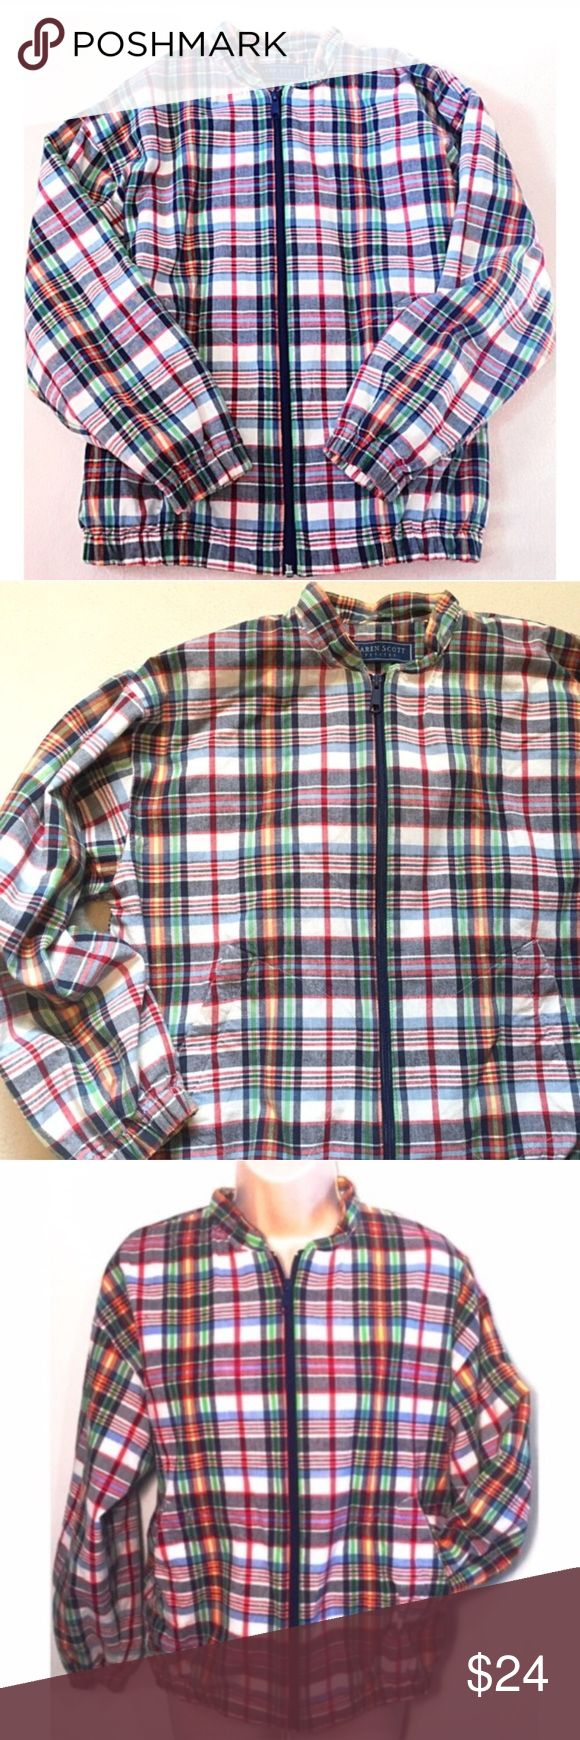 "❣BOGO 1/2 off❣🆕Plaid cotton bomber jacket Flawless condition (washed once but never worn). Hues of white, navy, orange, green. Lighter weight, not at all heavy. 100% cotton, fully lined. 2 front pockets. Labeled petite small but fits a regular extra small. Measures 25"" long, 22"" flat across chest, 19"" sleeves, & 35"" stretch elastic bottom opening. 🔴Bundle likes for a private offer! 🔴NO TRADES, no modeling. 🔴REASONABLE offers welcome via offer button.  ⭐️I had a hard time photographing…"